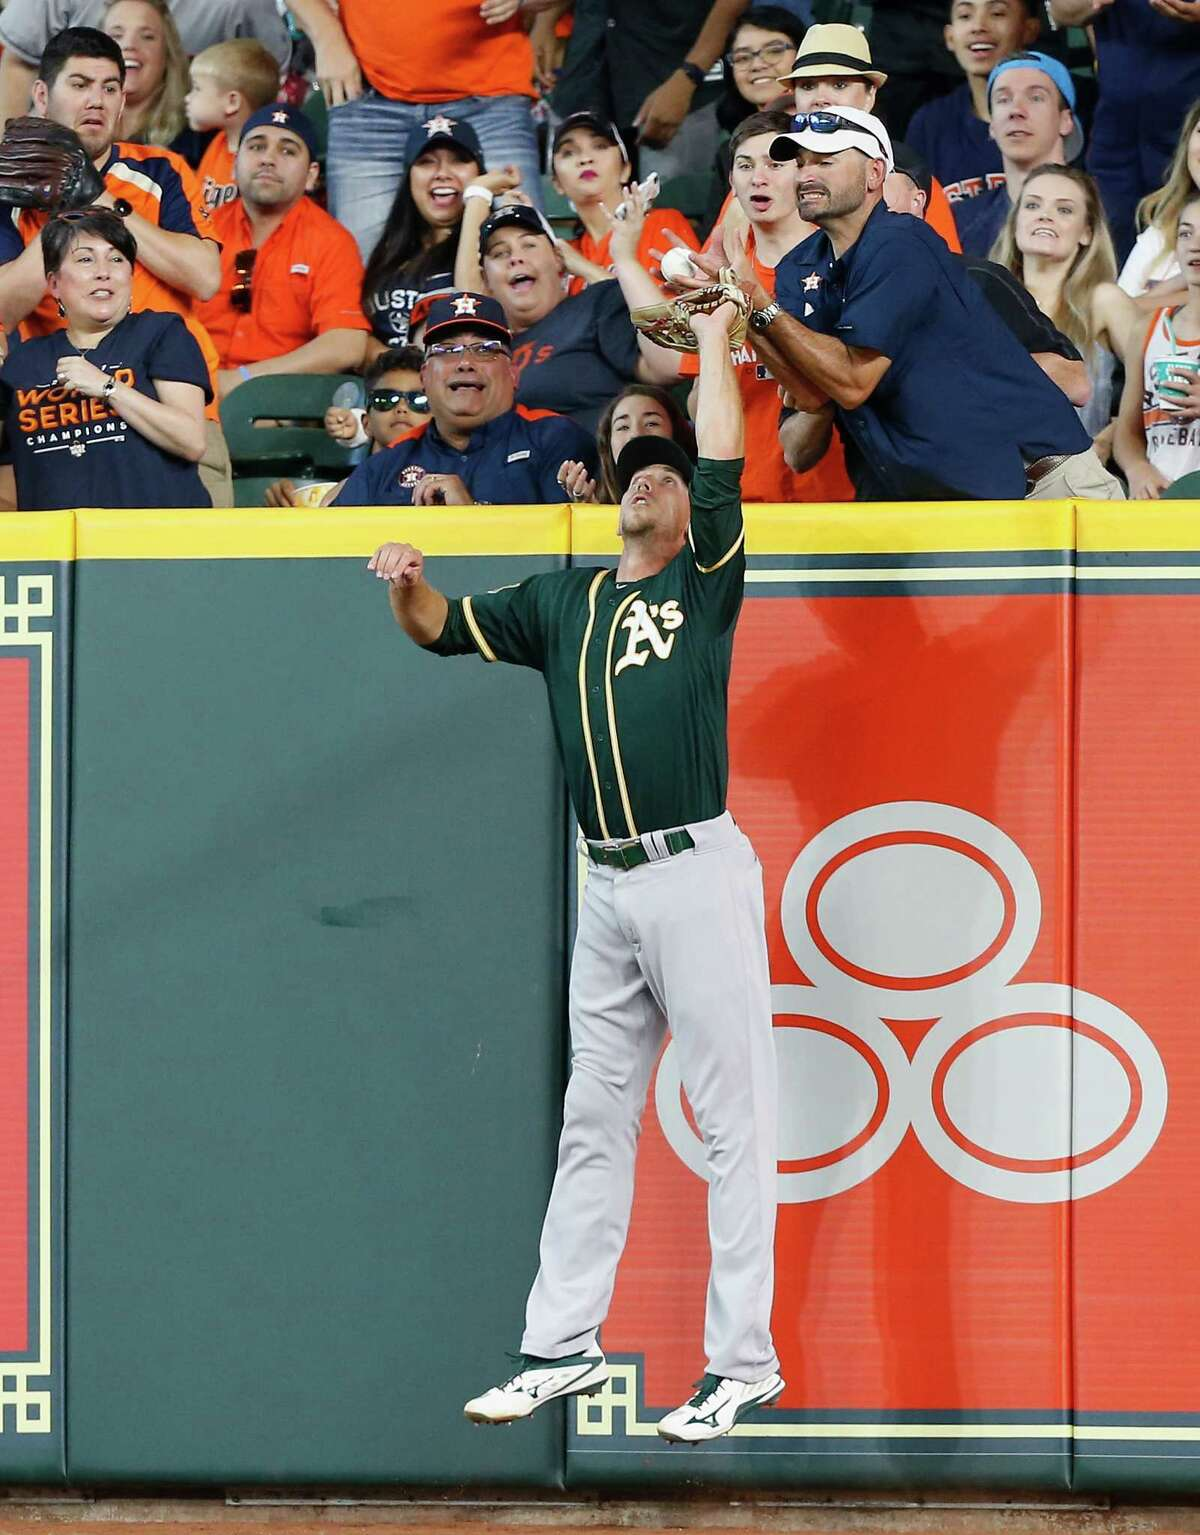 HOUSTON, TX - APRIL 29: Stephen Piscotty #25 of the Oakland Athletics leaps for a ball hit by Max Stassi #12 of the Houston Astros in the fifth inning but is interfered with by a fan at Minute Maid Park on April 29, 2018 in Houston, Texas. Umpires reviewed and upheld that Stassi was out.